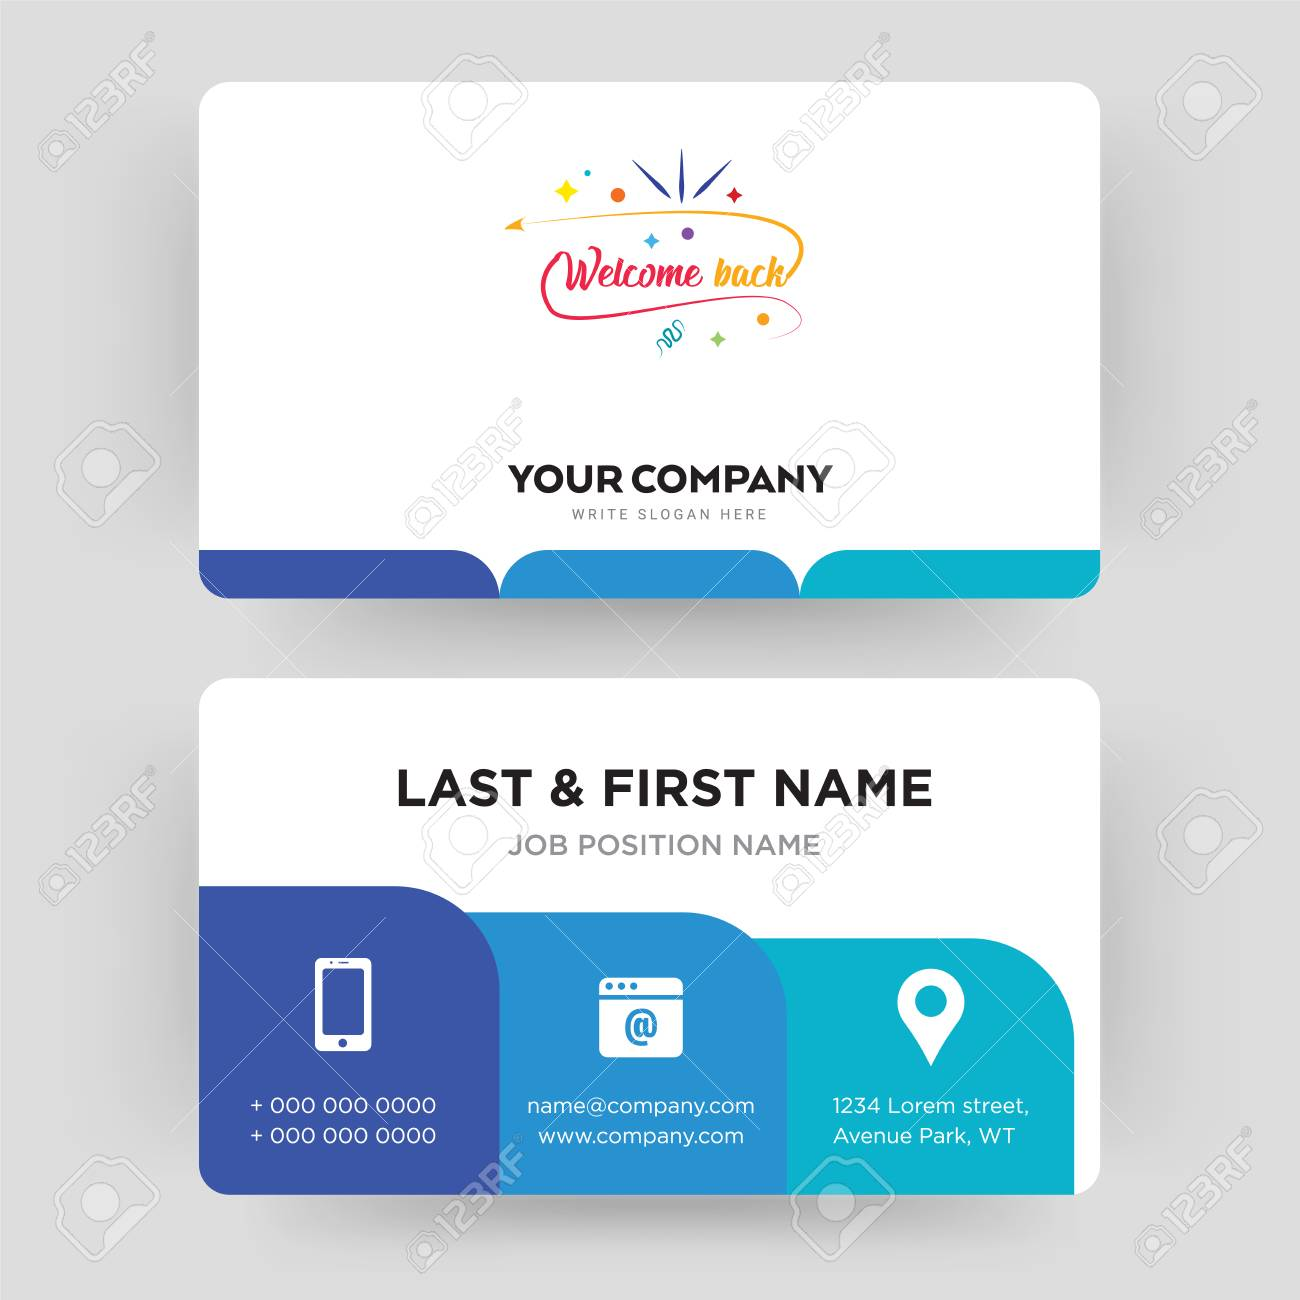 Welcome Back Business Card Design Template Visiting For Your